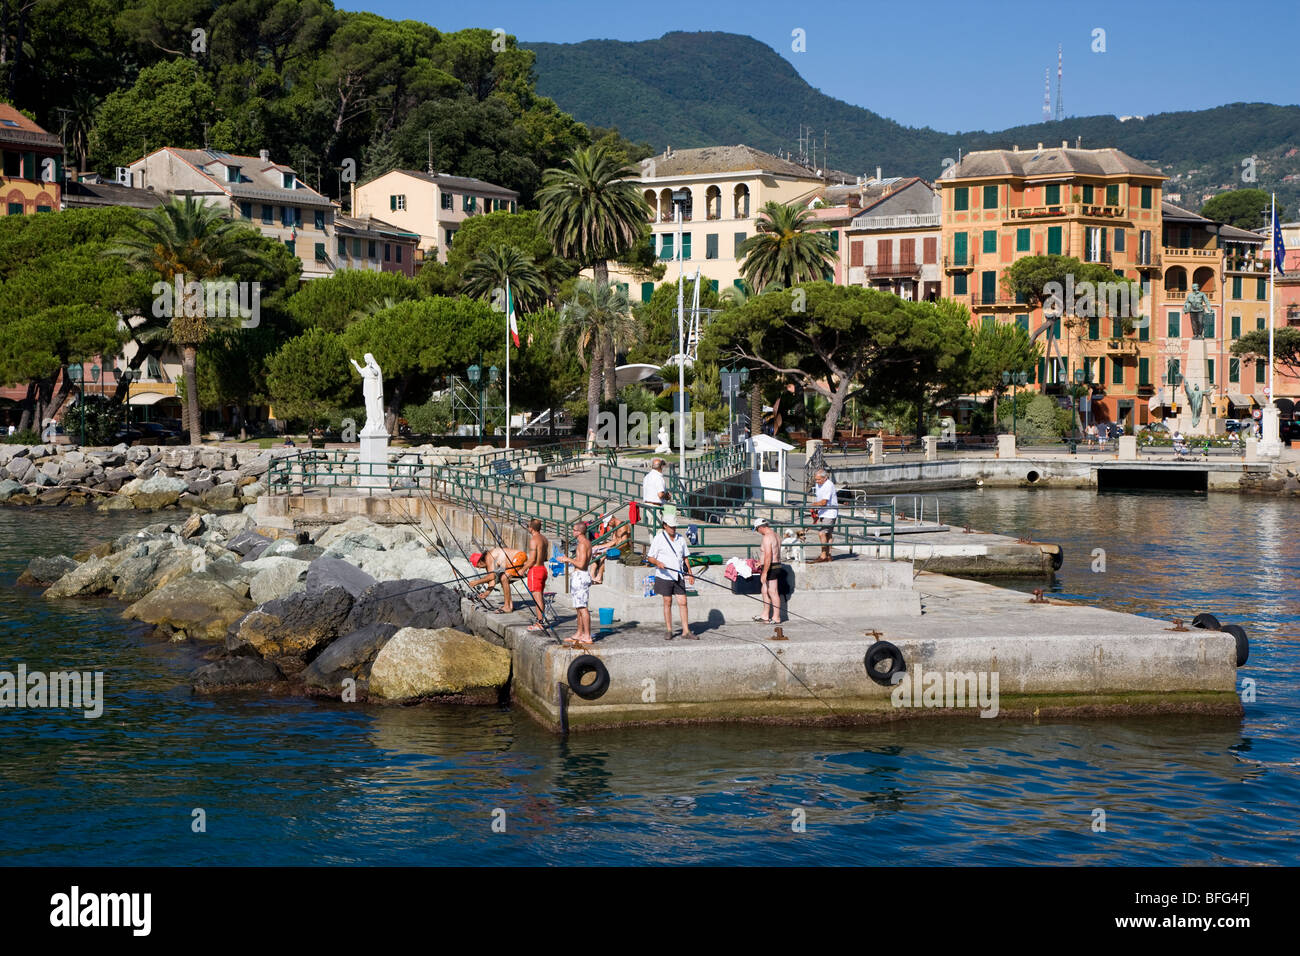 Water front of Santa margherita ligure, Italy Stock Photo